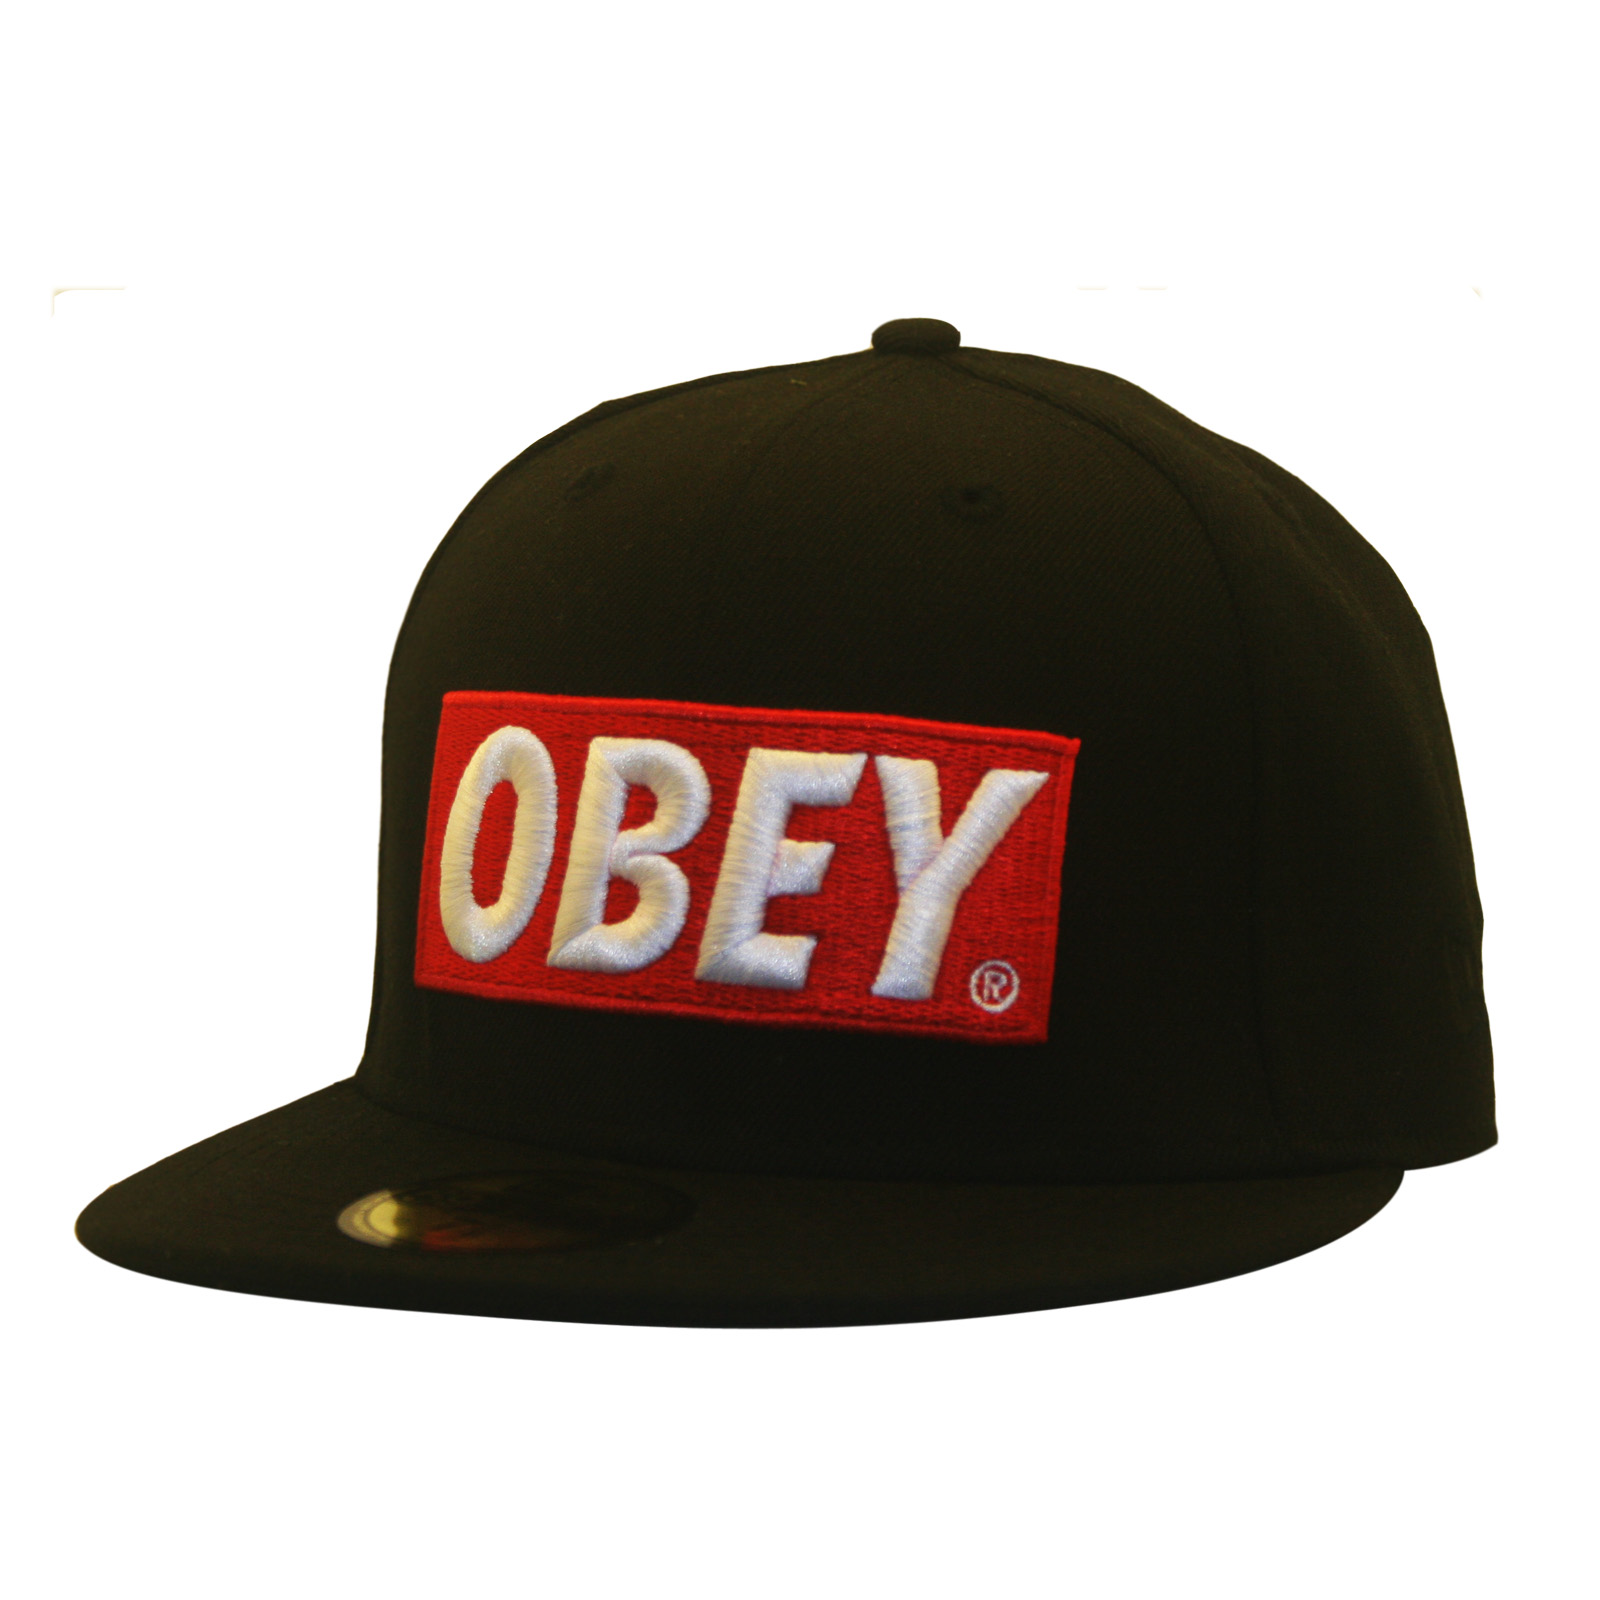 Crossover Obey Spring 2011 Crossover